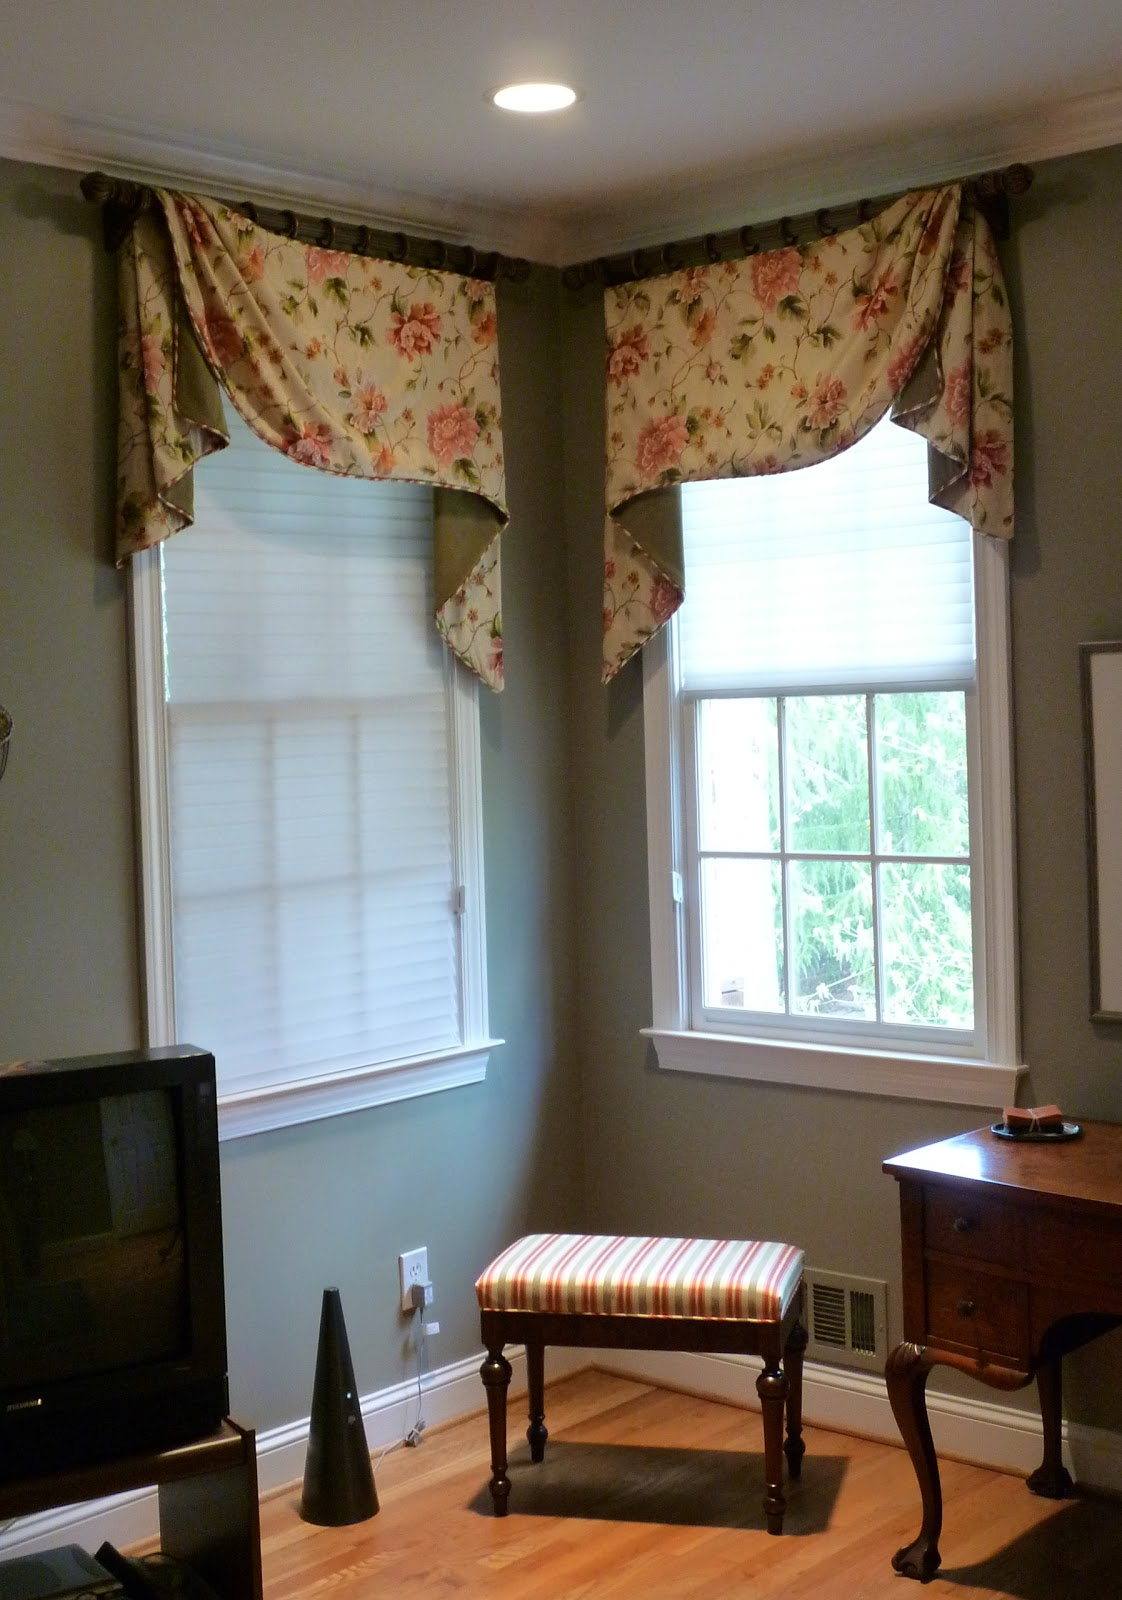 Youngblood interiors corner window treatments for the master bedroom Window coverings for bedrooms